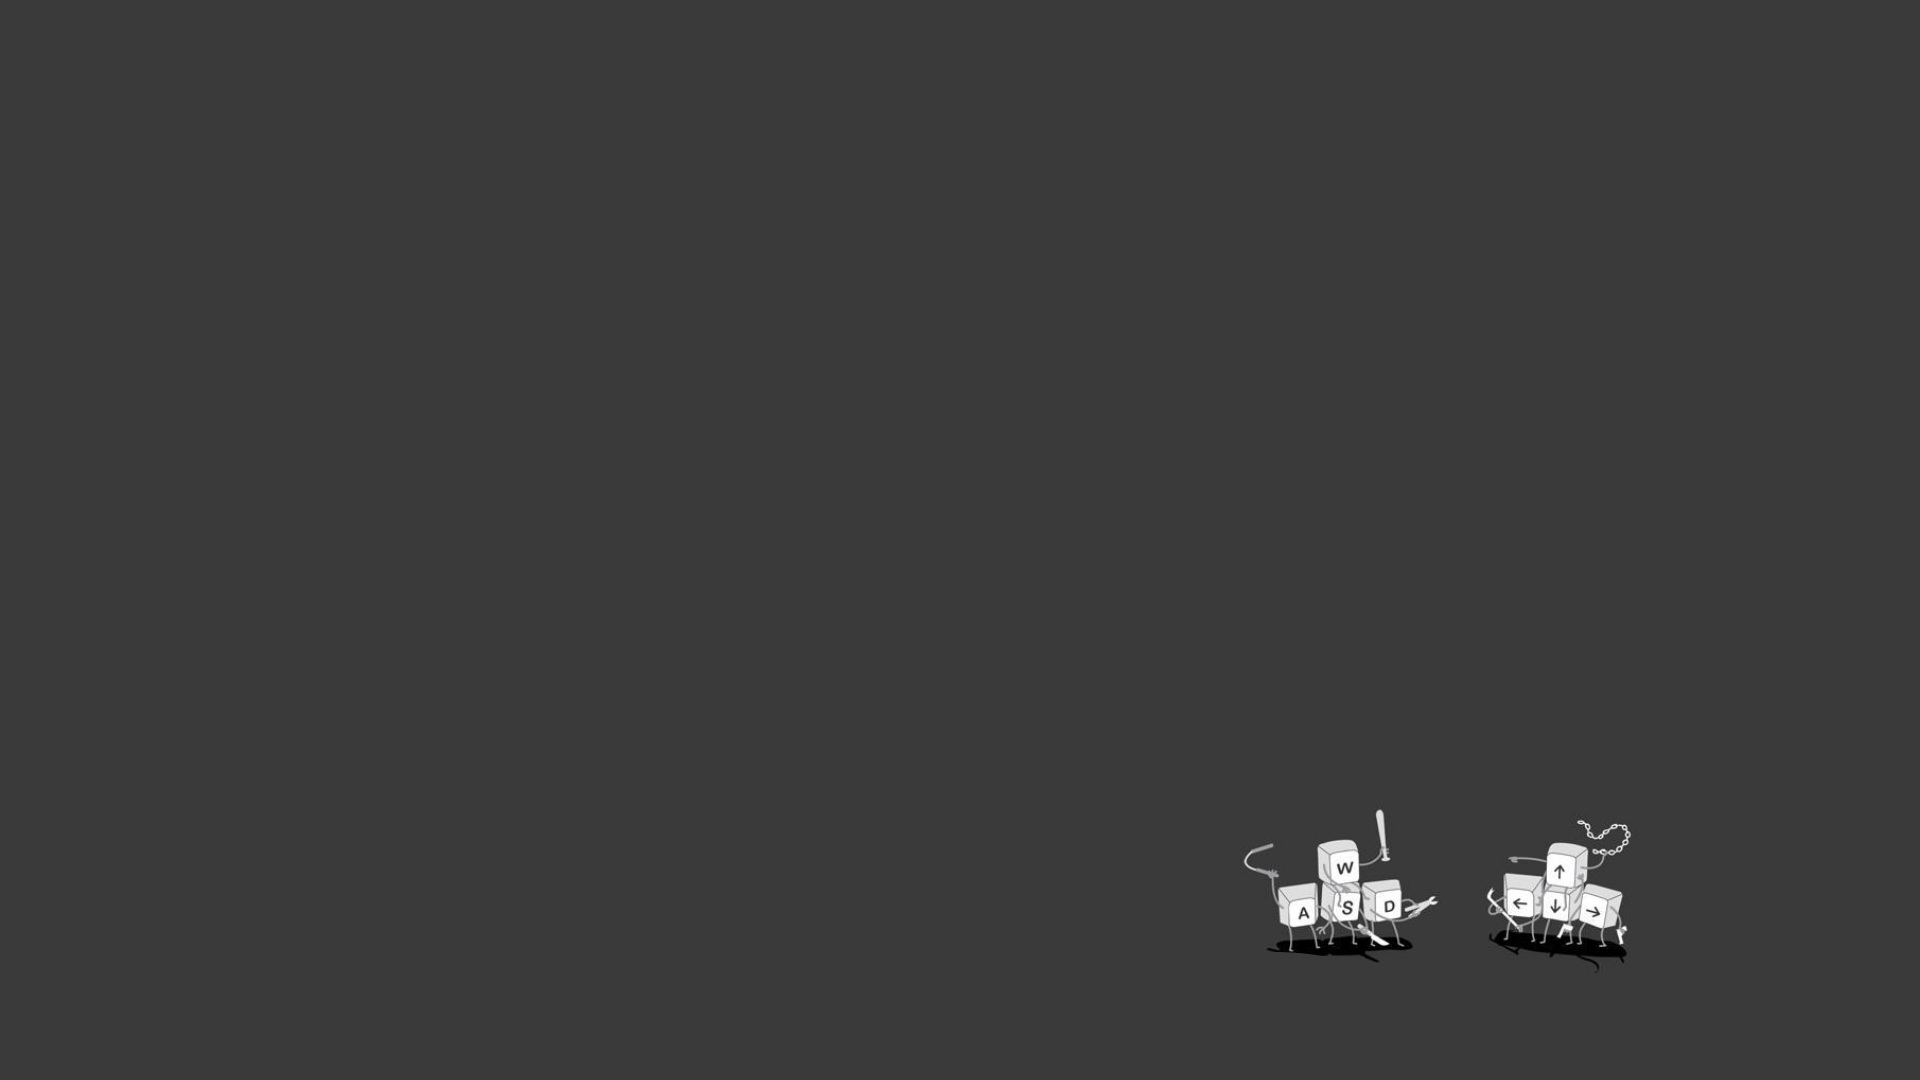 is best and in this case our selection of HD minimalist wallpapers 1920x1080